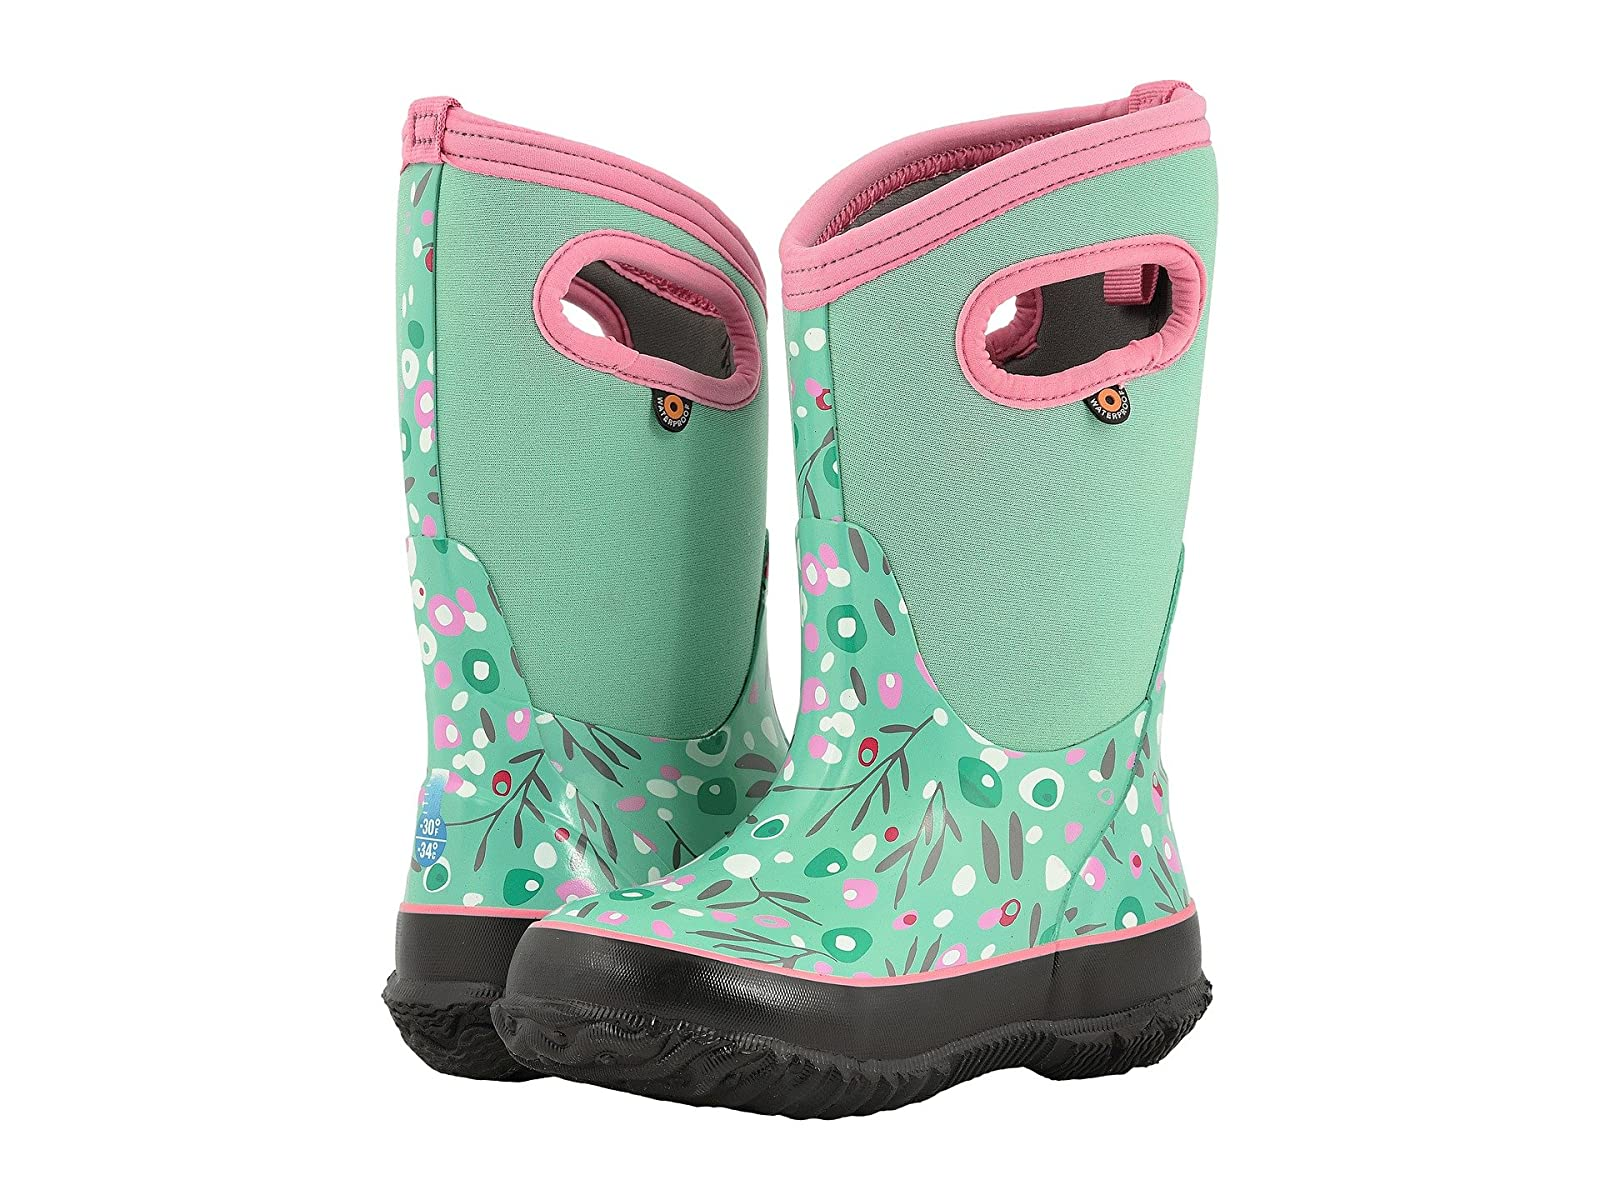 Bogs Kids Classic Cattail (Toddler/Little Kid/Big Kid)Selling fashionable and eye-catching shoes